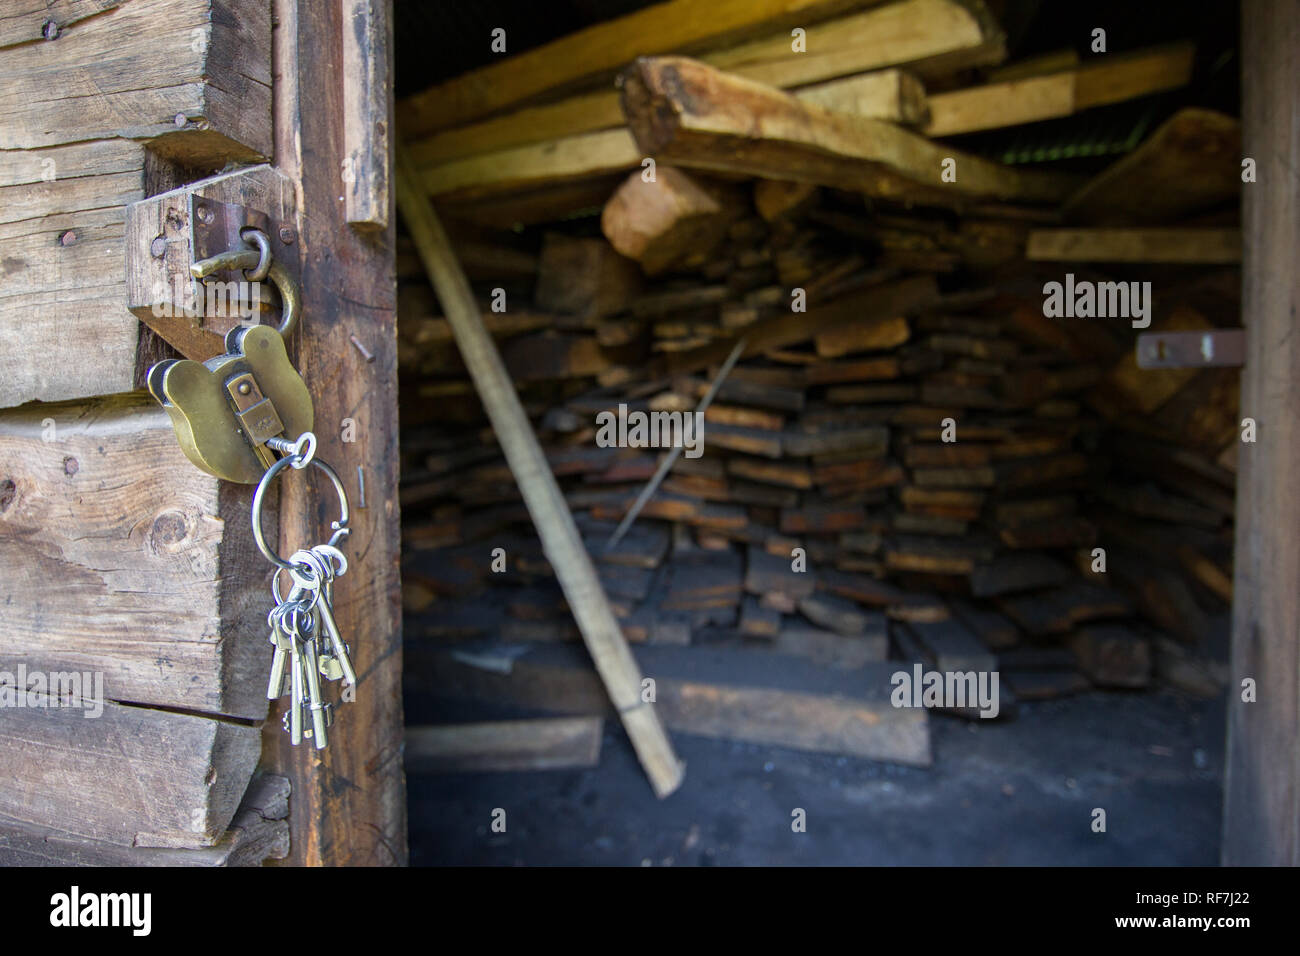 Confiscated planks of critically endangered Mulanje Cedar, Widdringtonia whytei, housed in a store room at Mount Mulanje, Malawi. - Stock Image